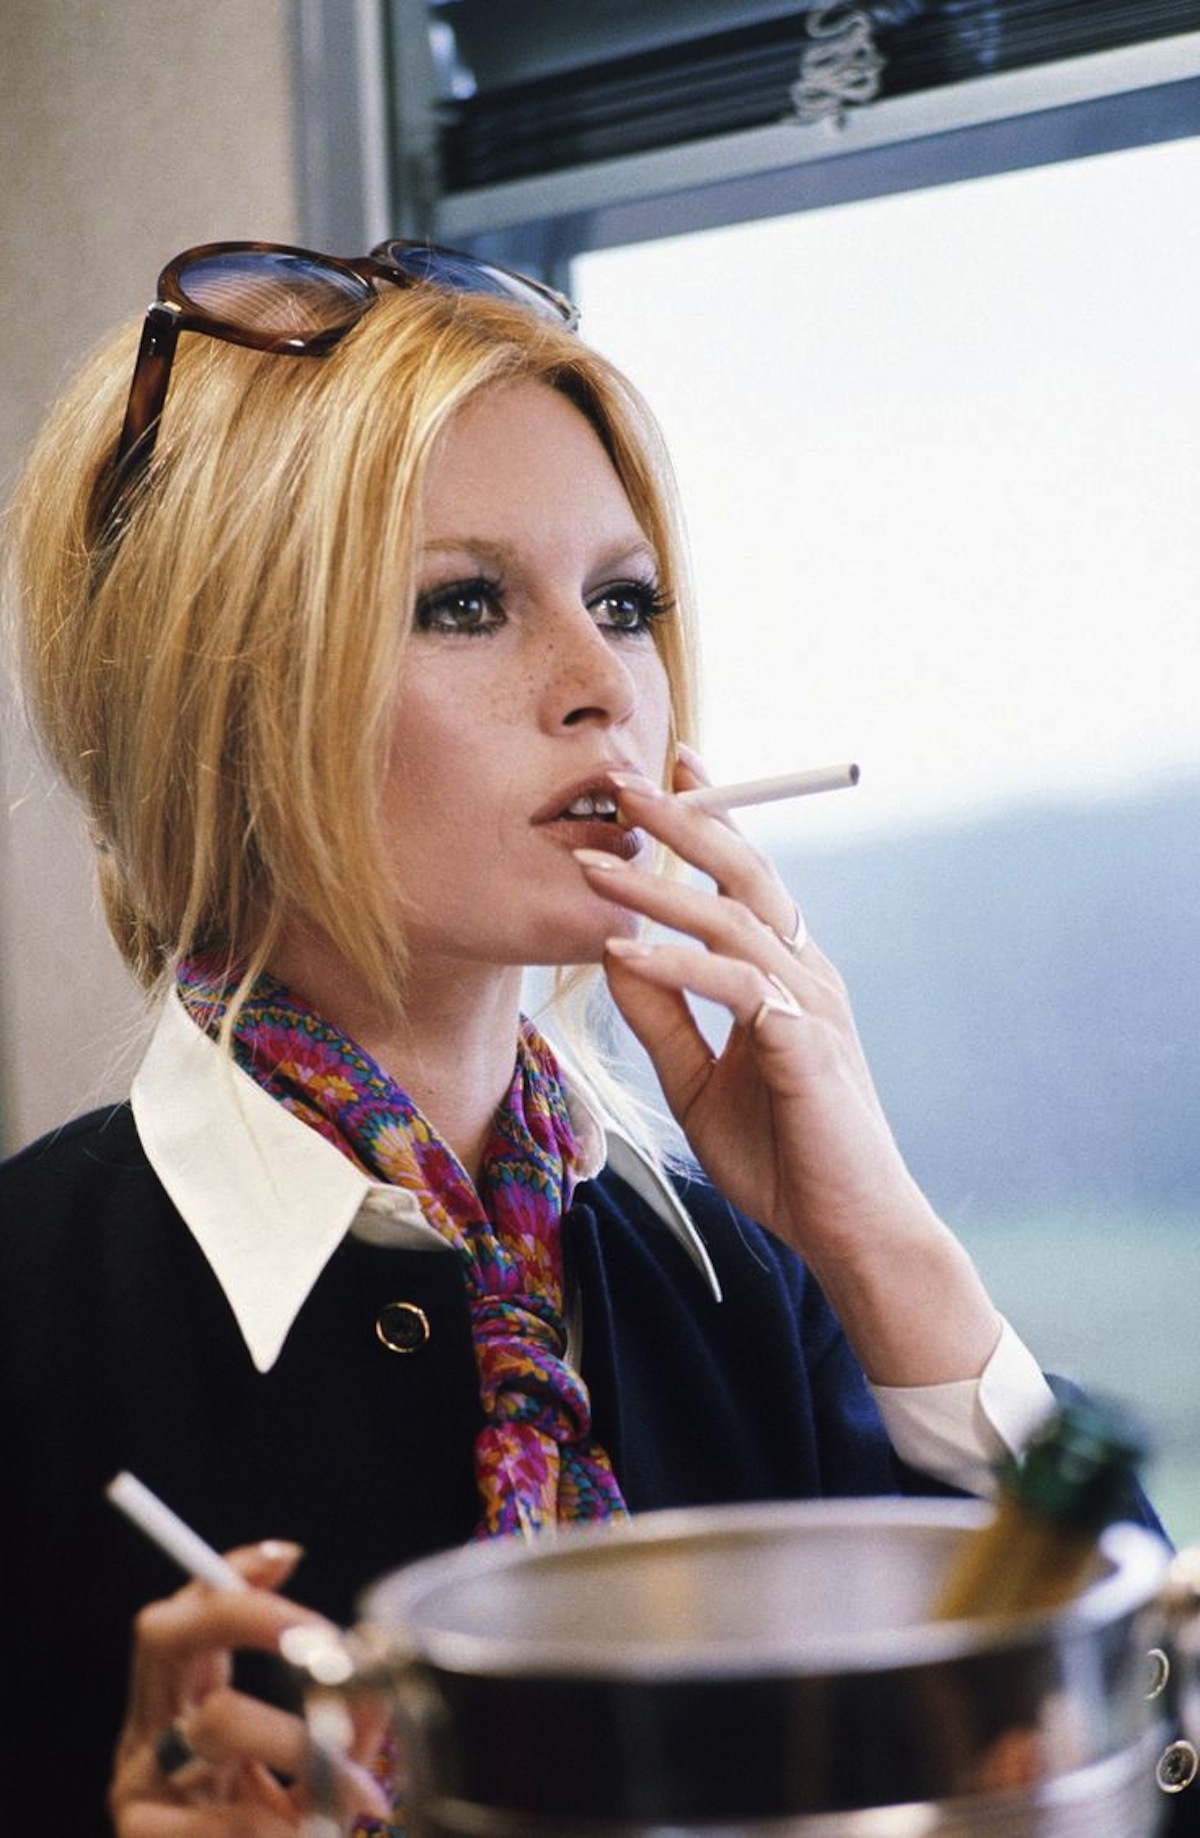 Brigitte-Bardot-All-about-details-screen-caption-in-les-femmes-jean-aurel